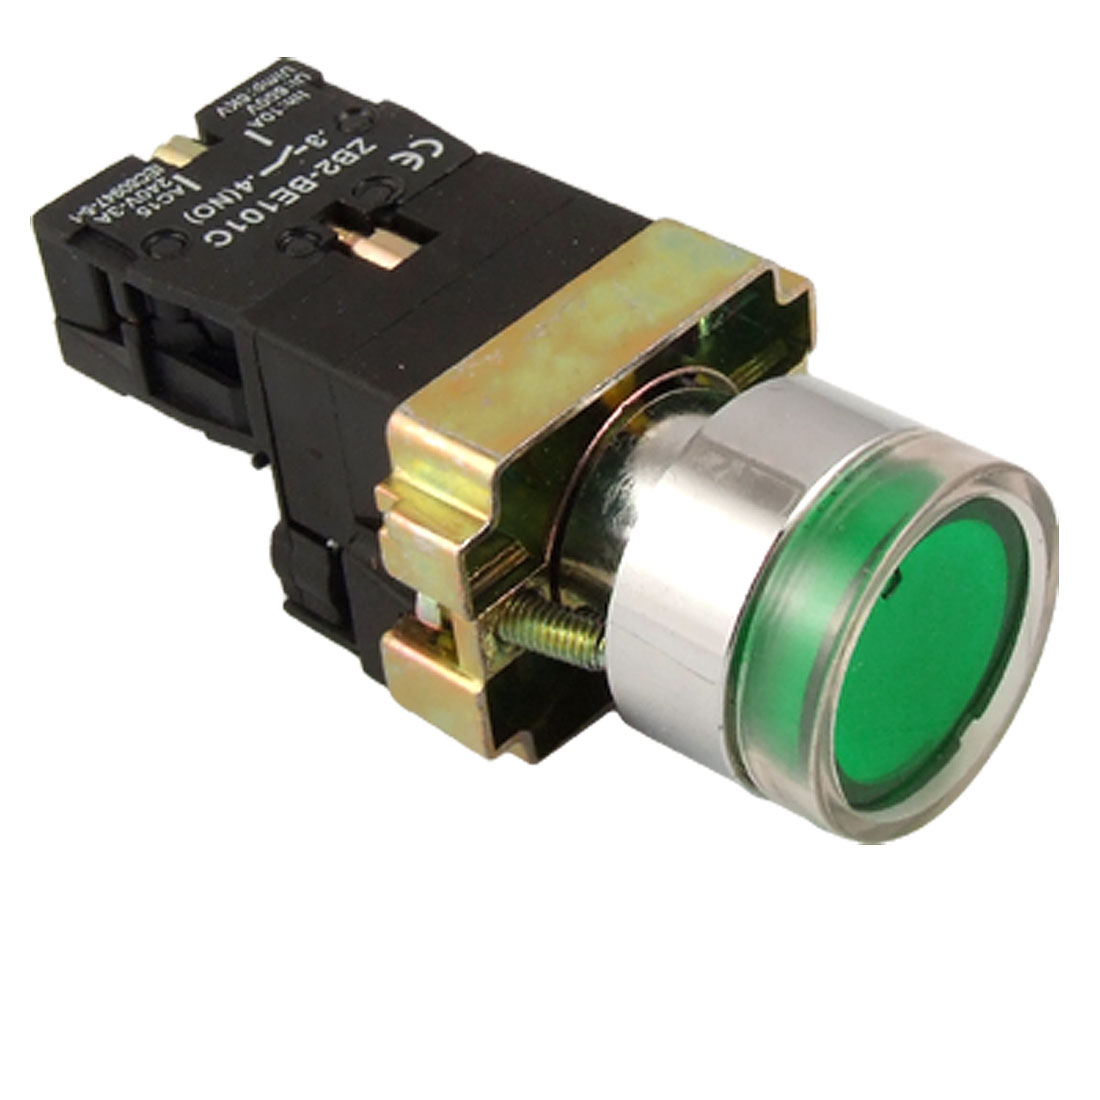 ZB2-BE101C Green Lamp Light Momentary Push Button Switch 1 N/O NO Normally Open